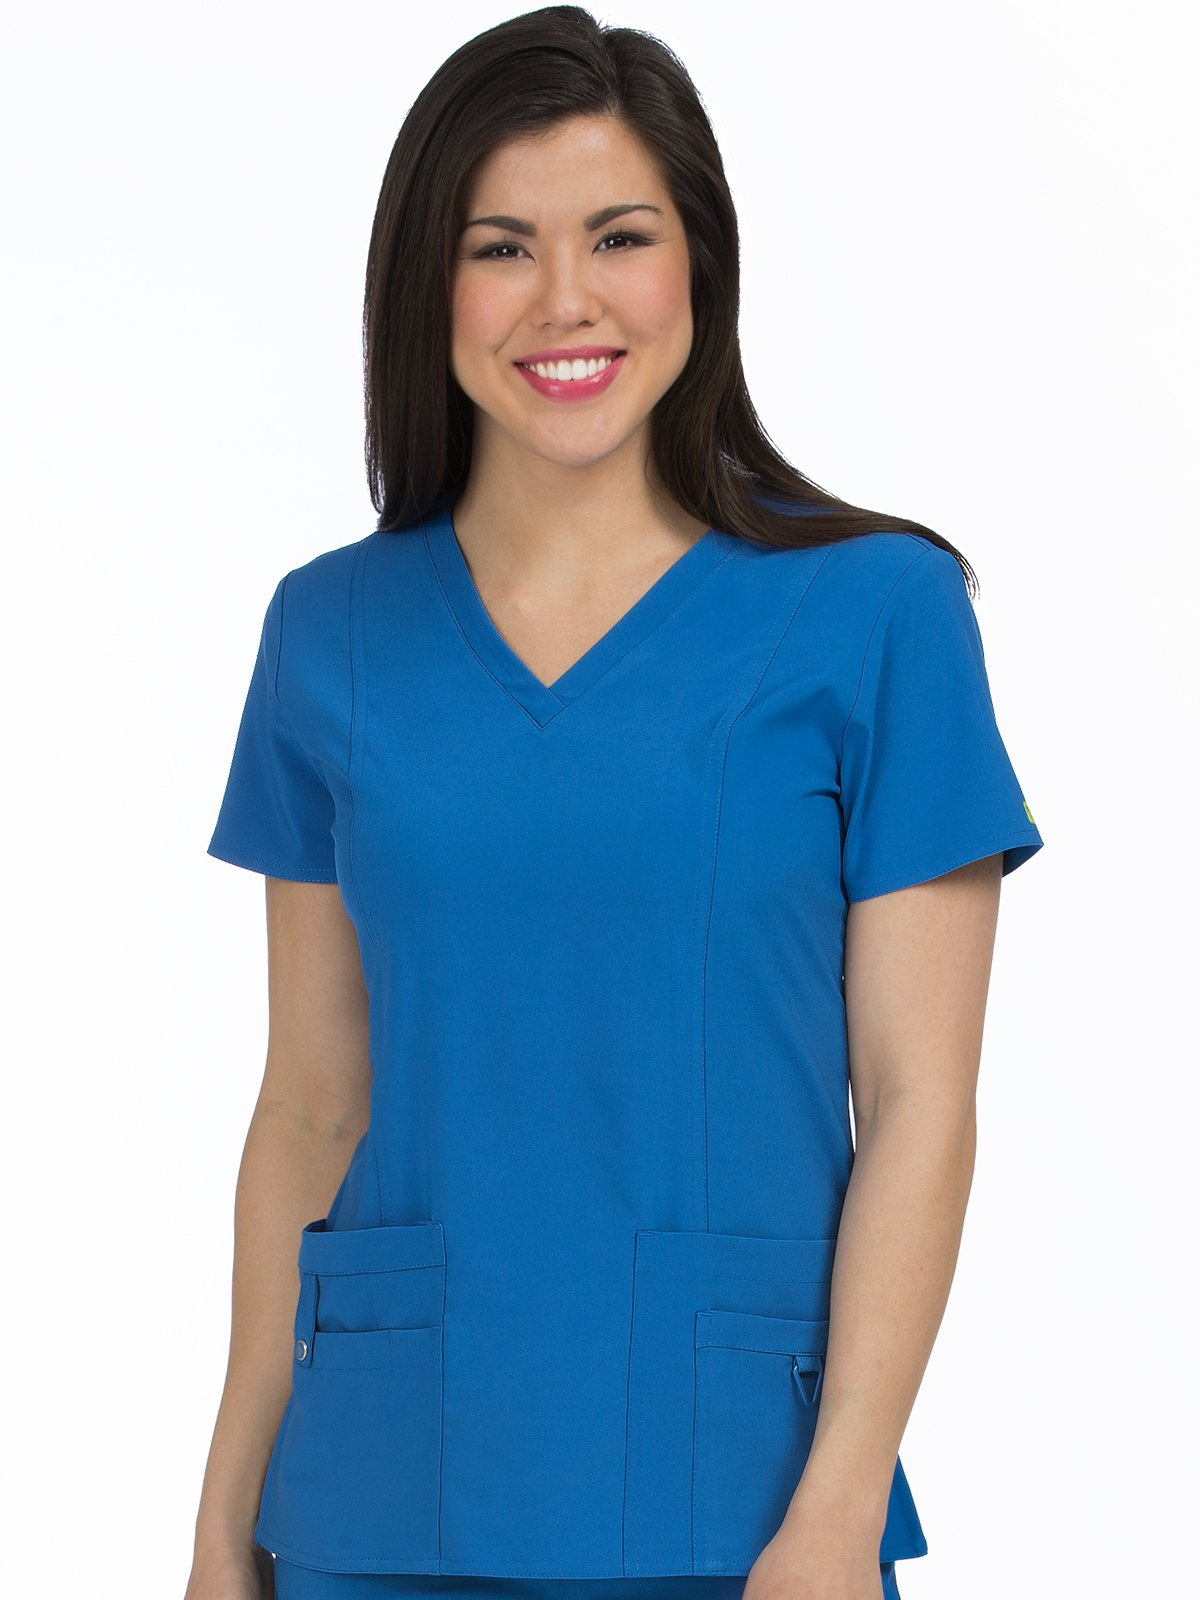 8408 V-Neck In-Motion Classic Top - Royal